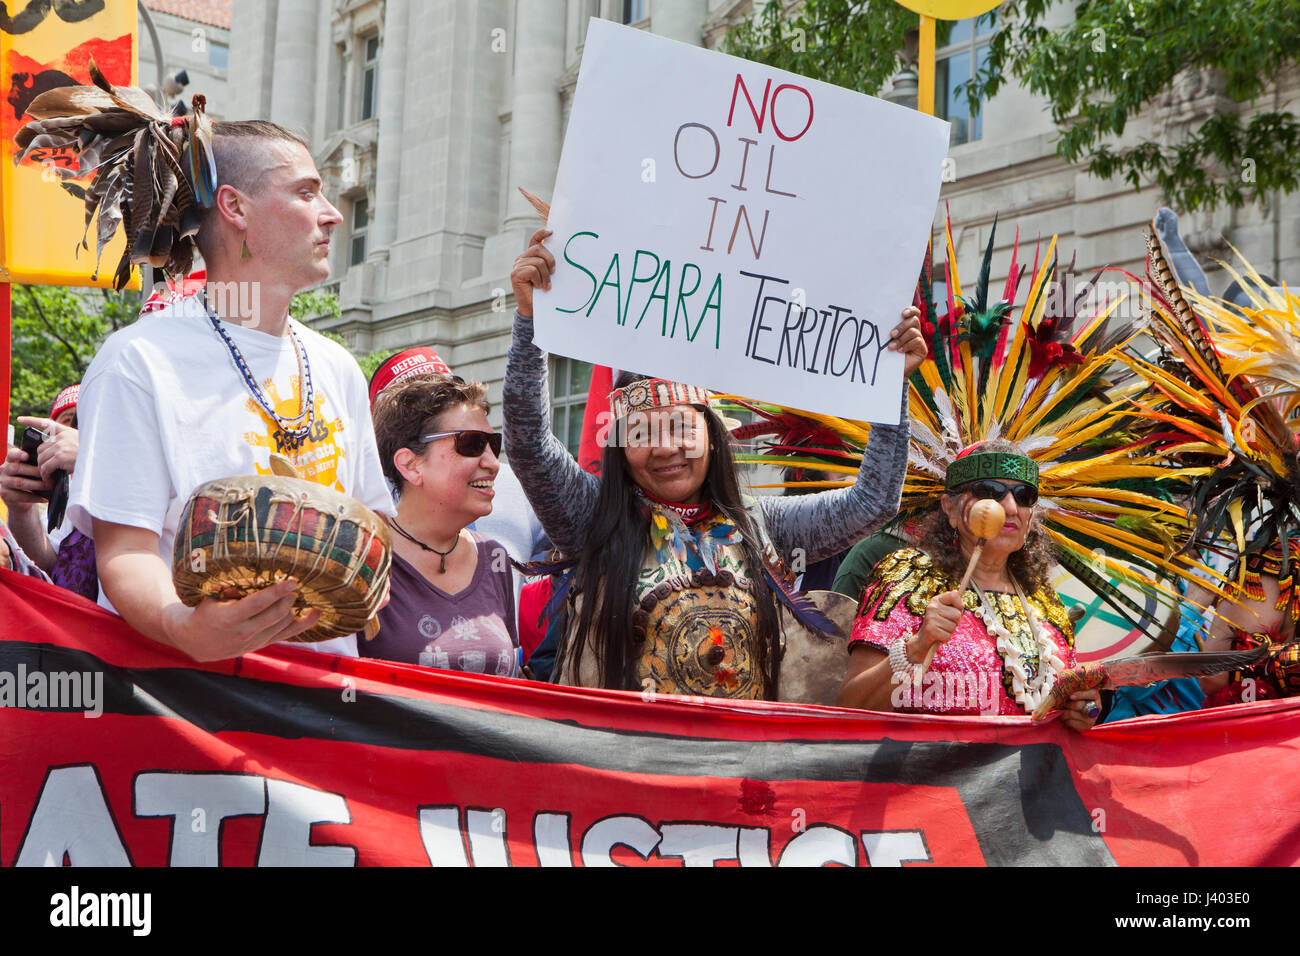 Native Americans protesting during People's Climate March - April 29, 2017, Washington, DC USA - Stock Image